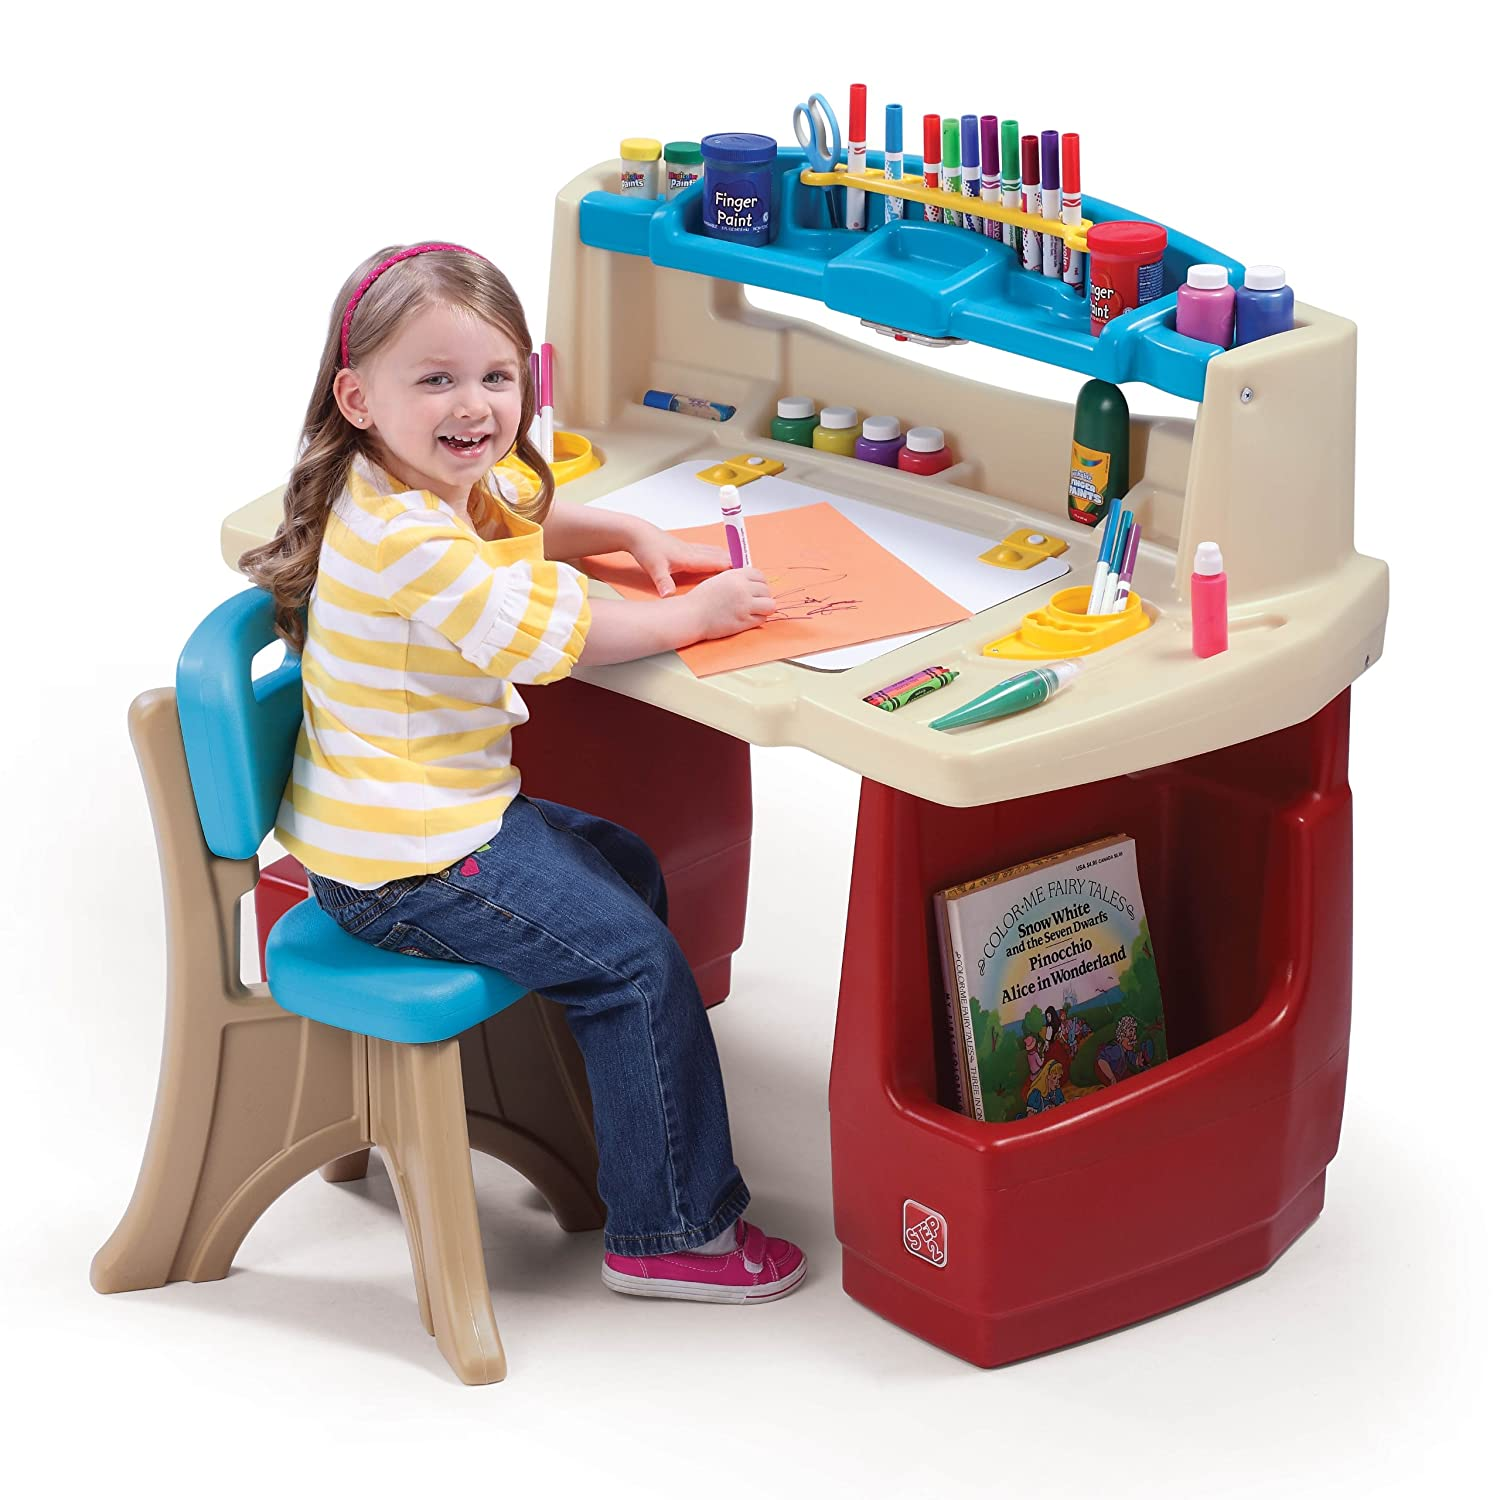 Kids art desk set deluxe playroom activity craft storage for Best desk chair for kids